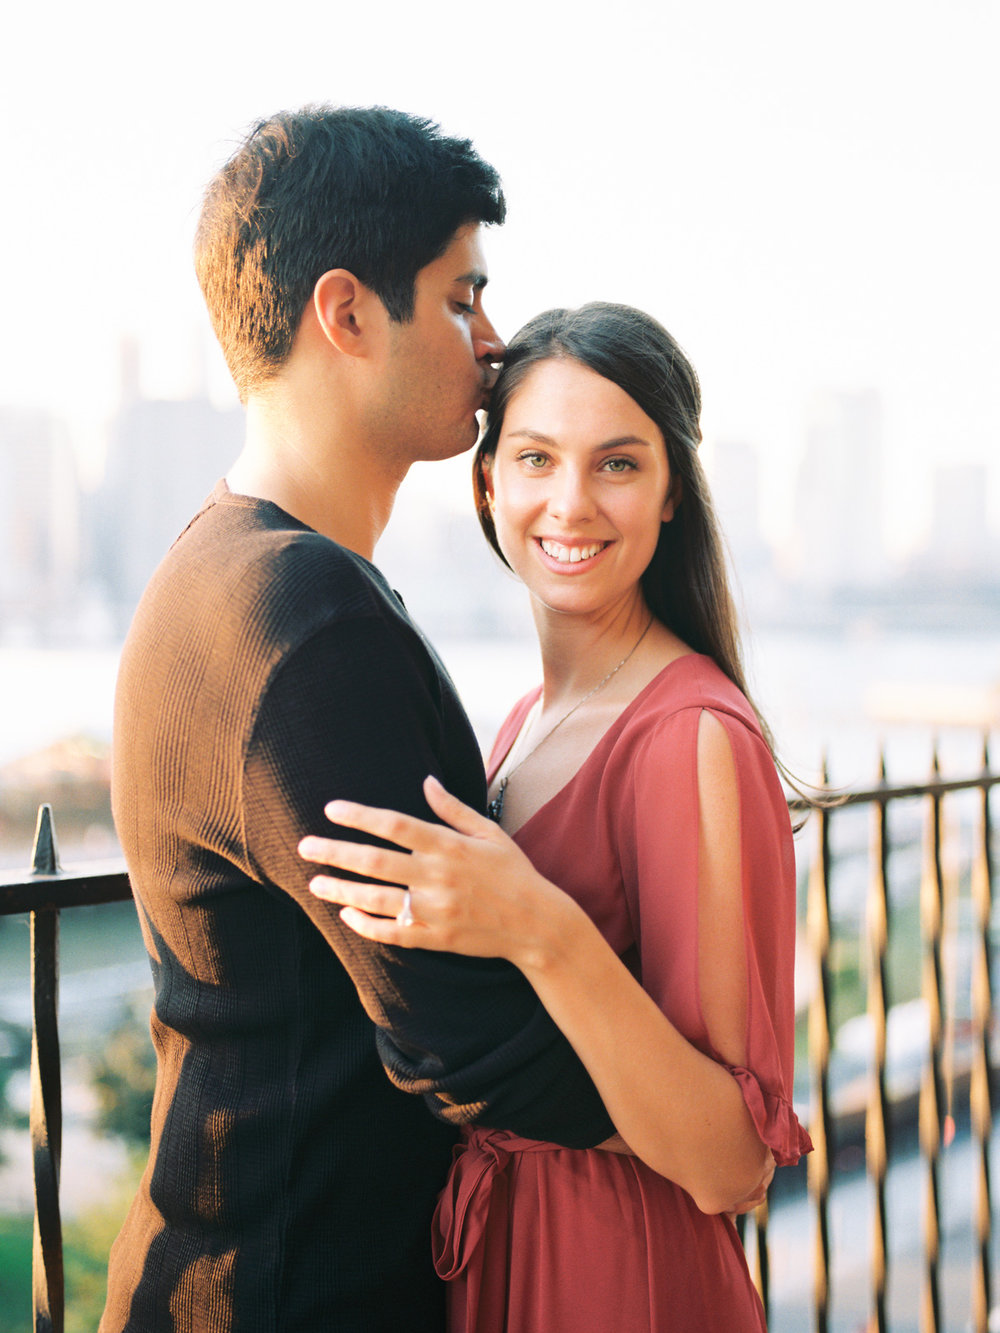 brooklyn-promenade-engagement-session.jpg